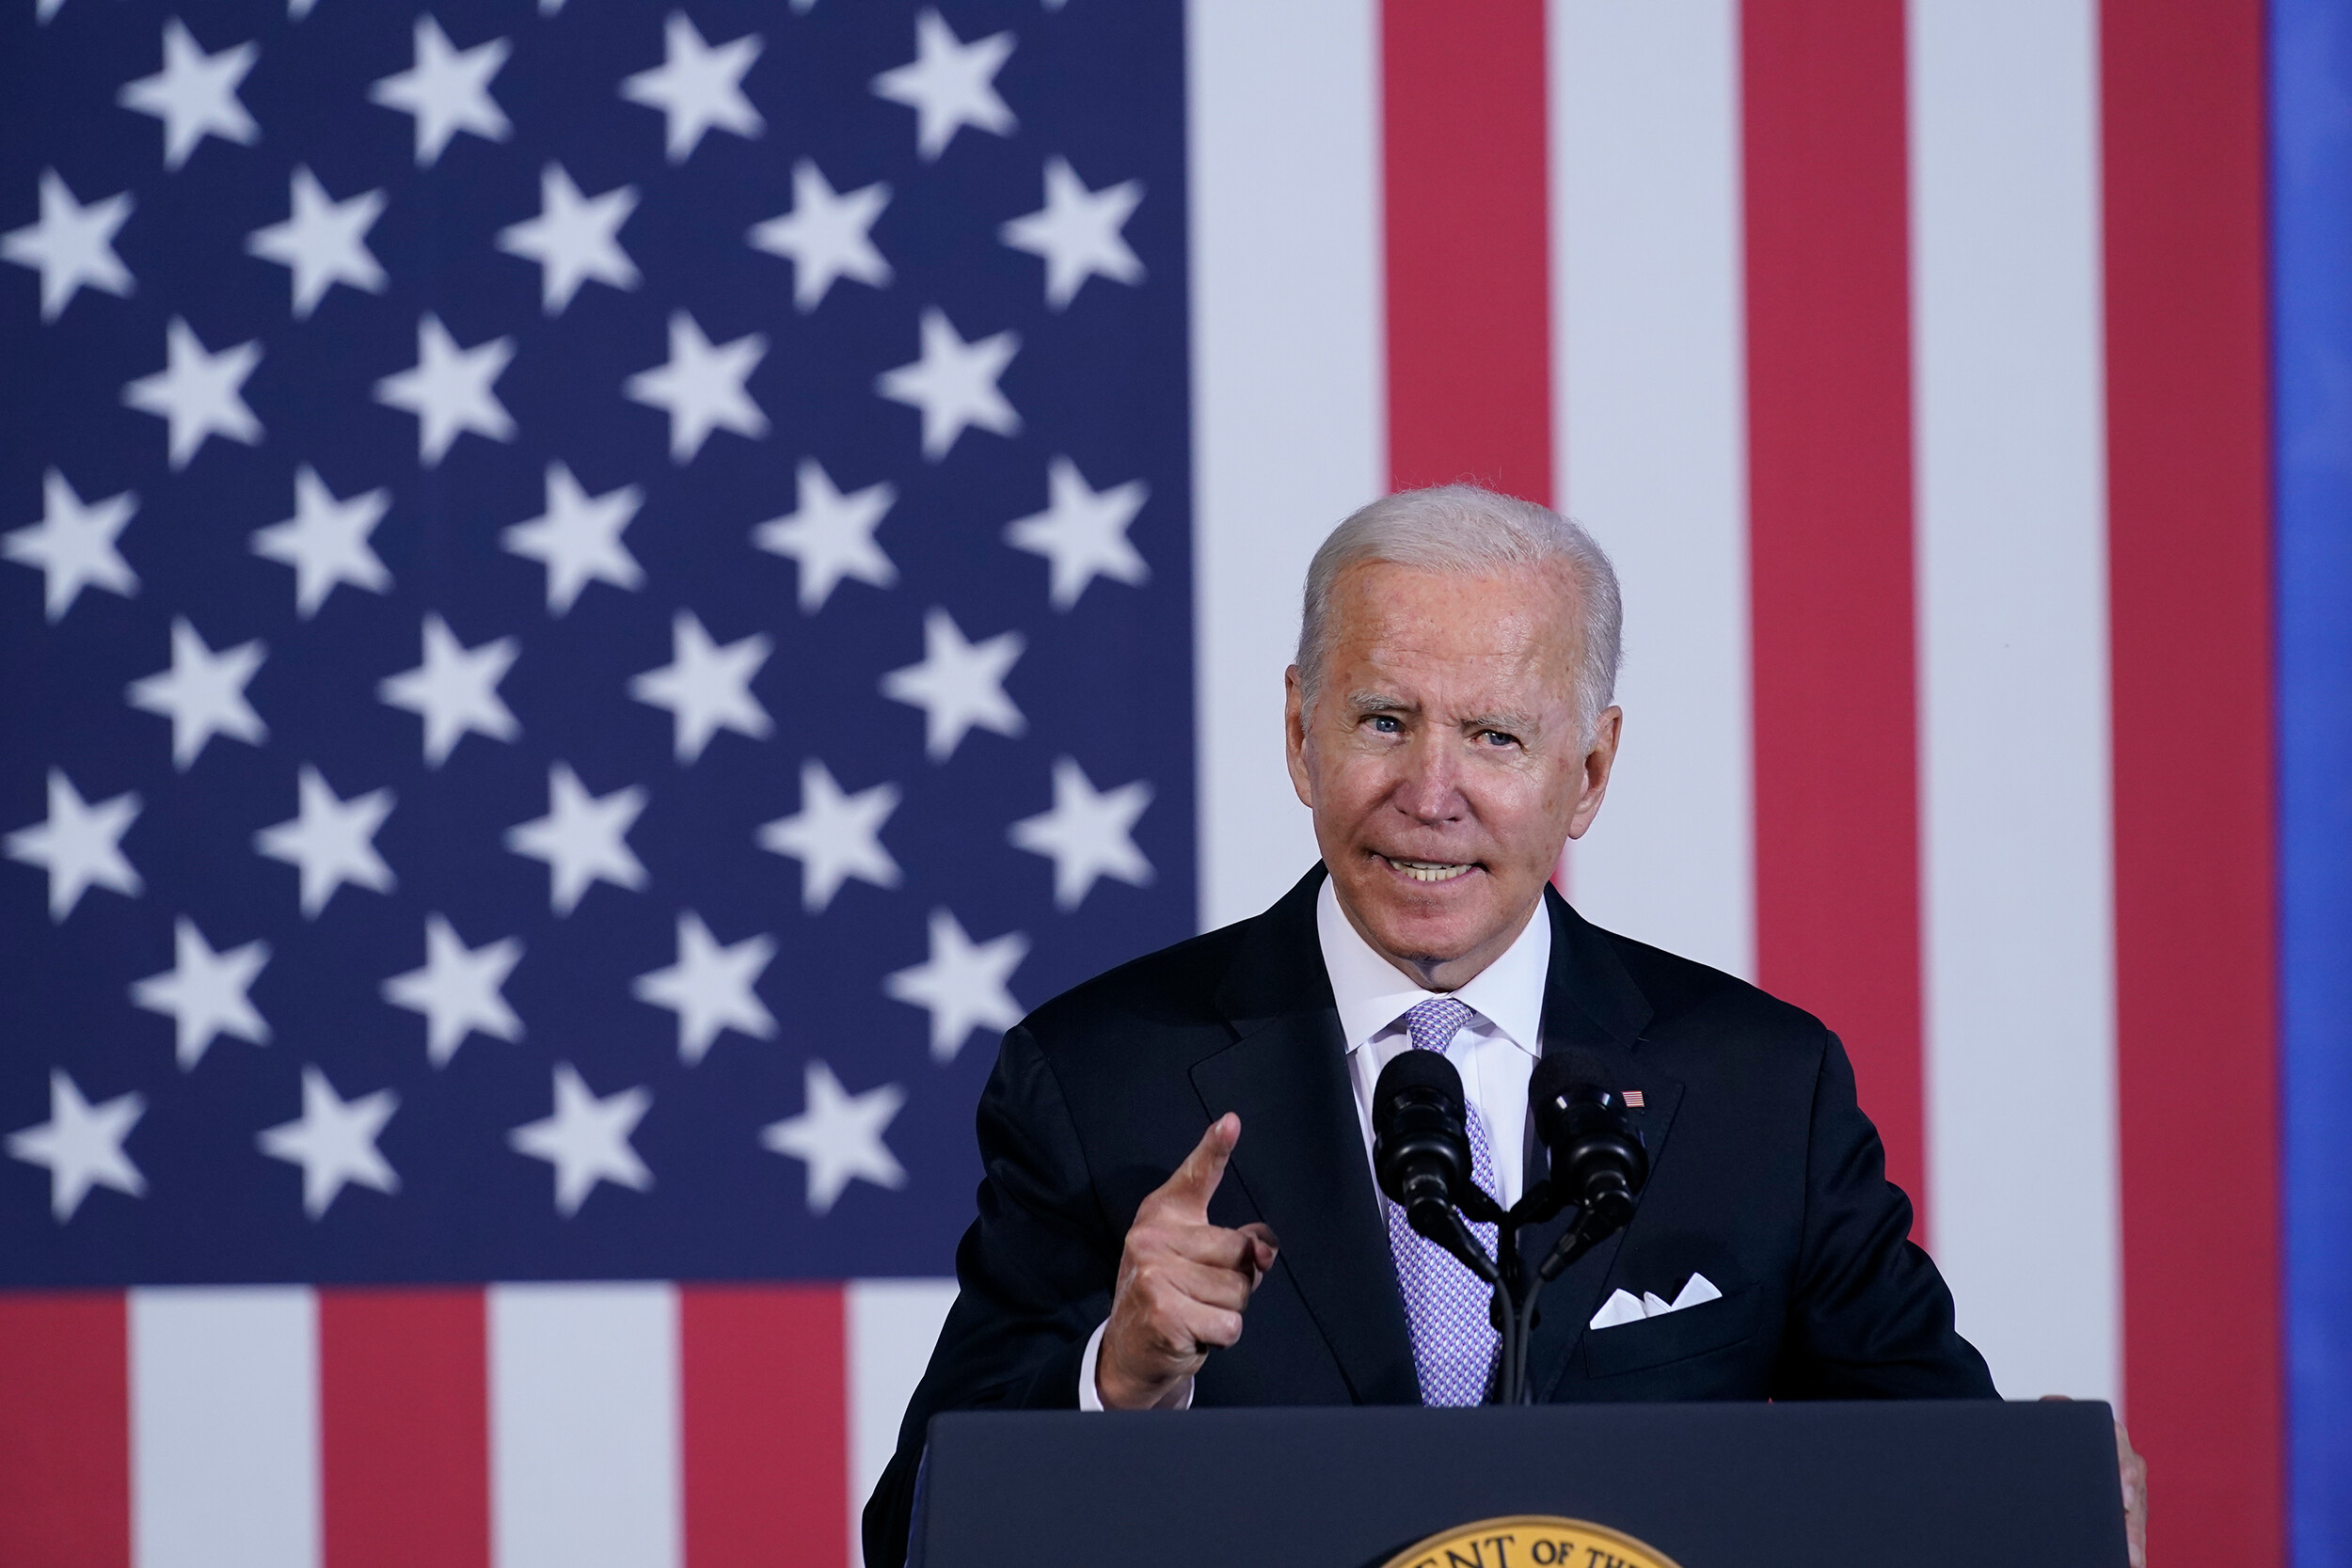 Biden pitches unfinished economic agenda in personal hometown remarks